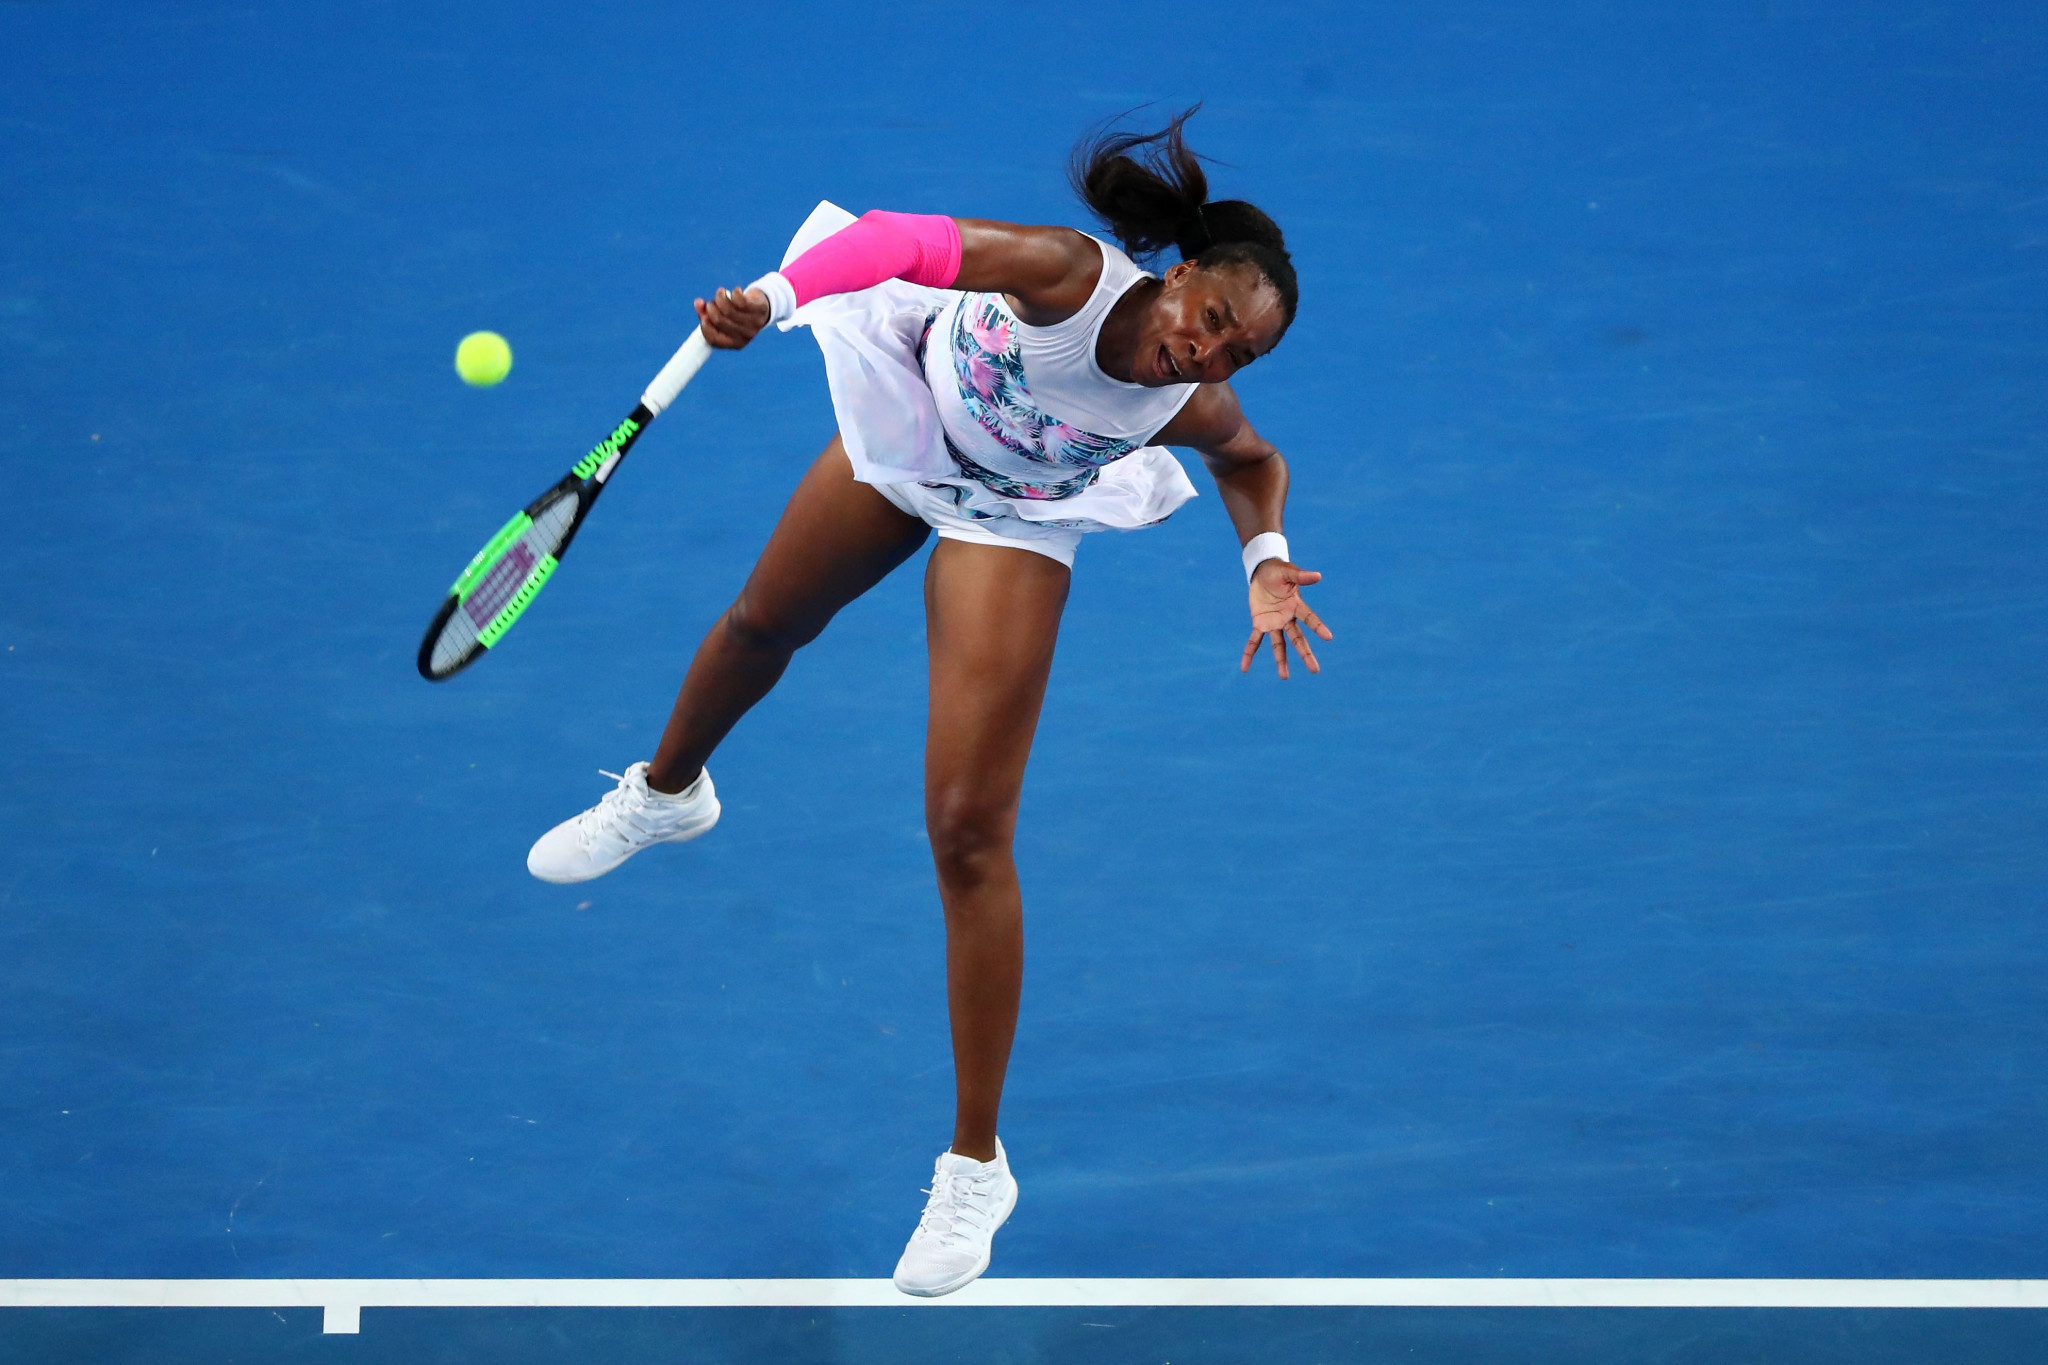 American Venus Williams was among the other winners in the women's singles draw ©Getty Images